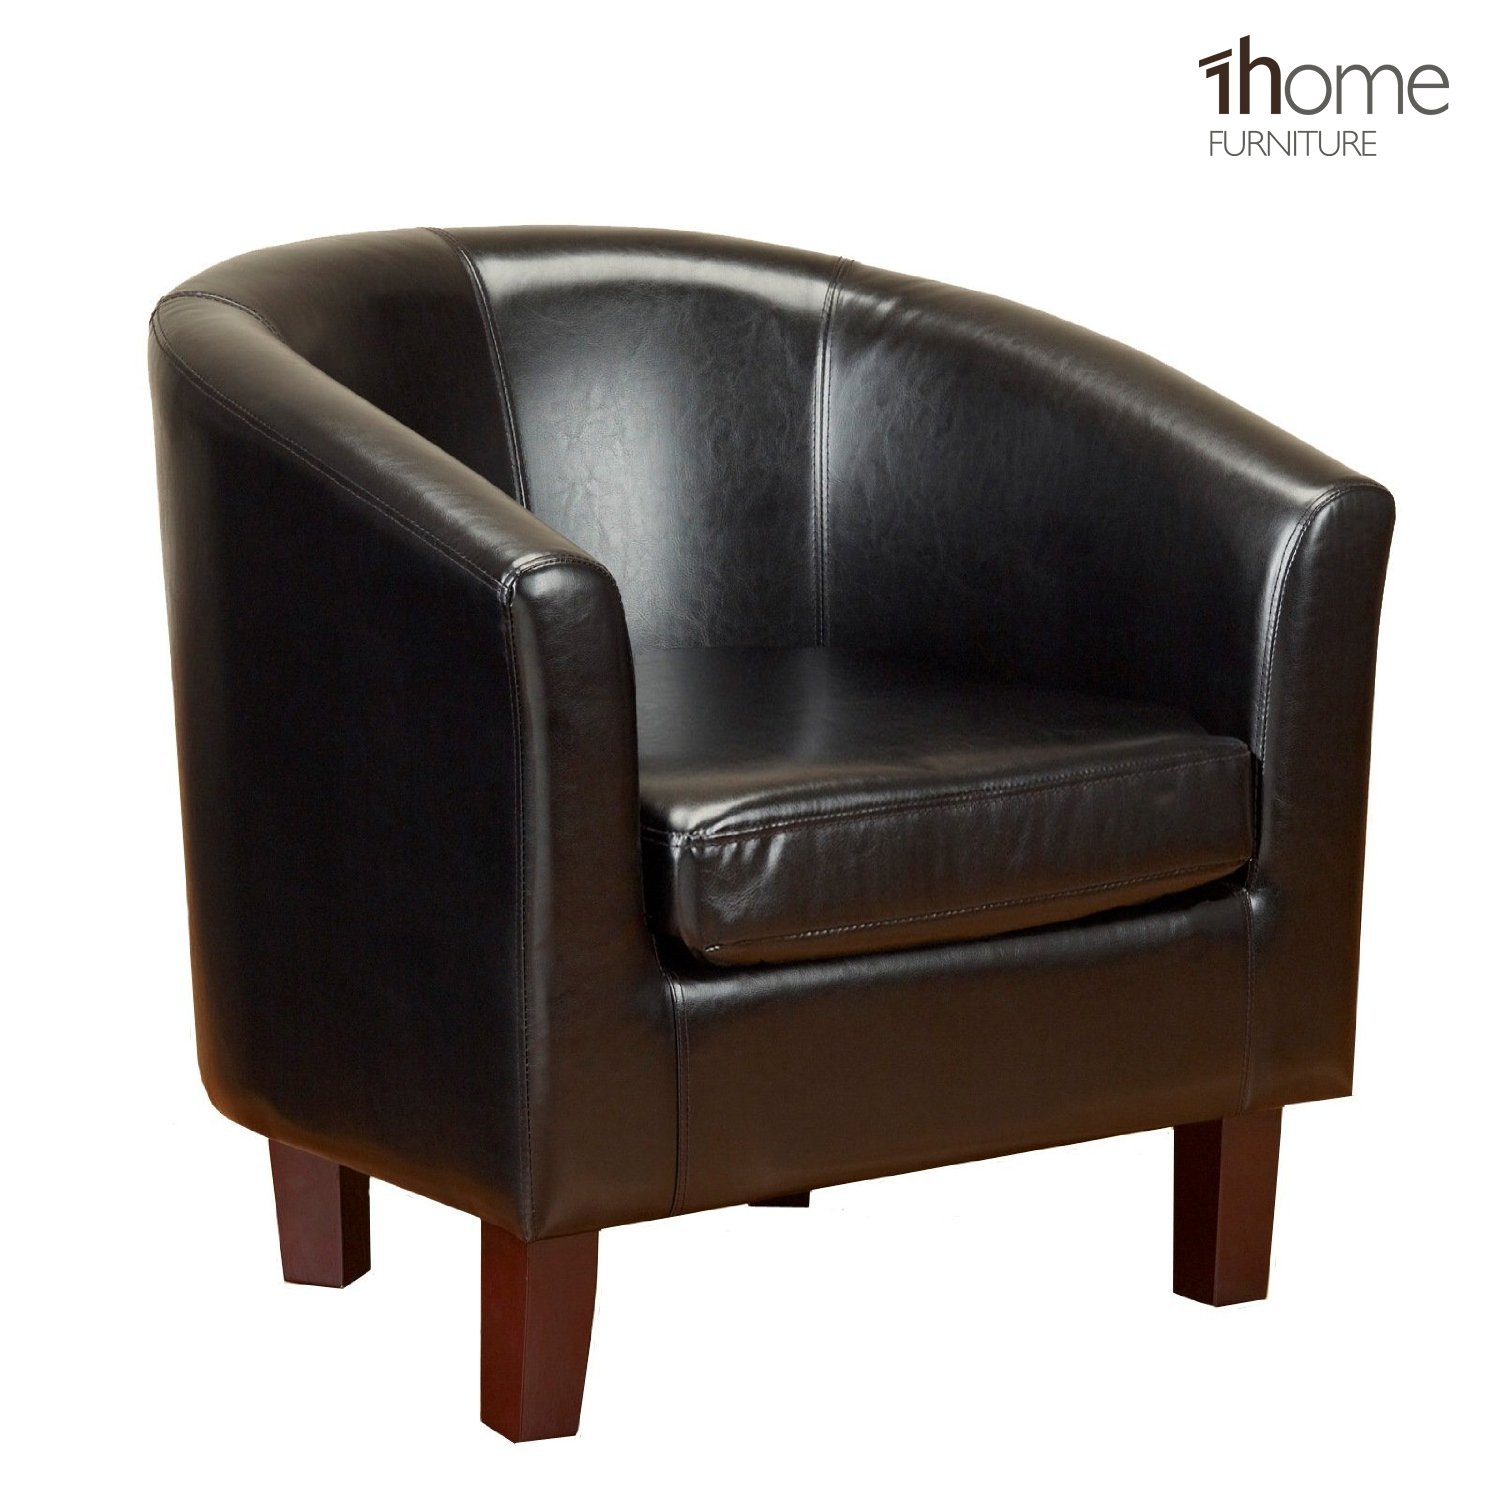 1home Bonded Leather Tub Chair Dining Living Room Office Reception (Black):  Amazon.co.uk: Kitchen U0026 Home